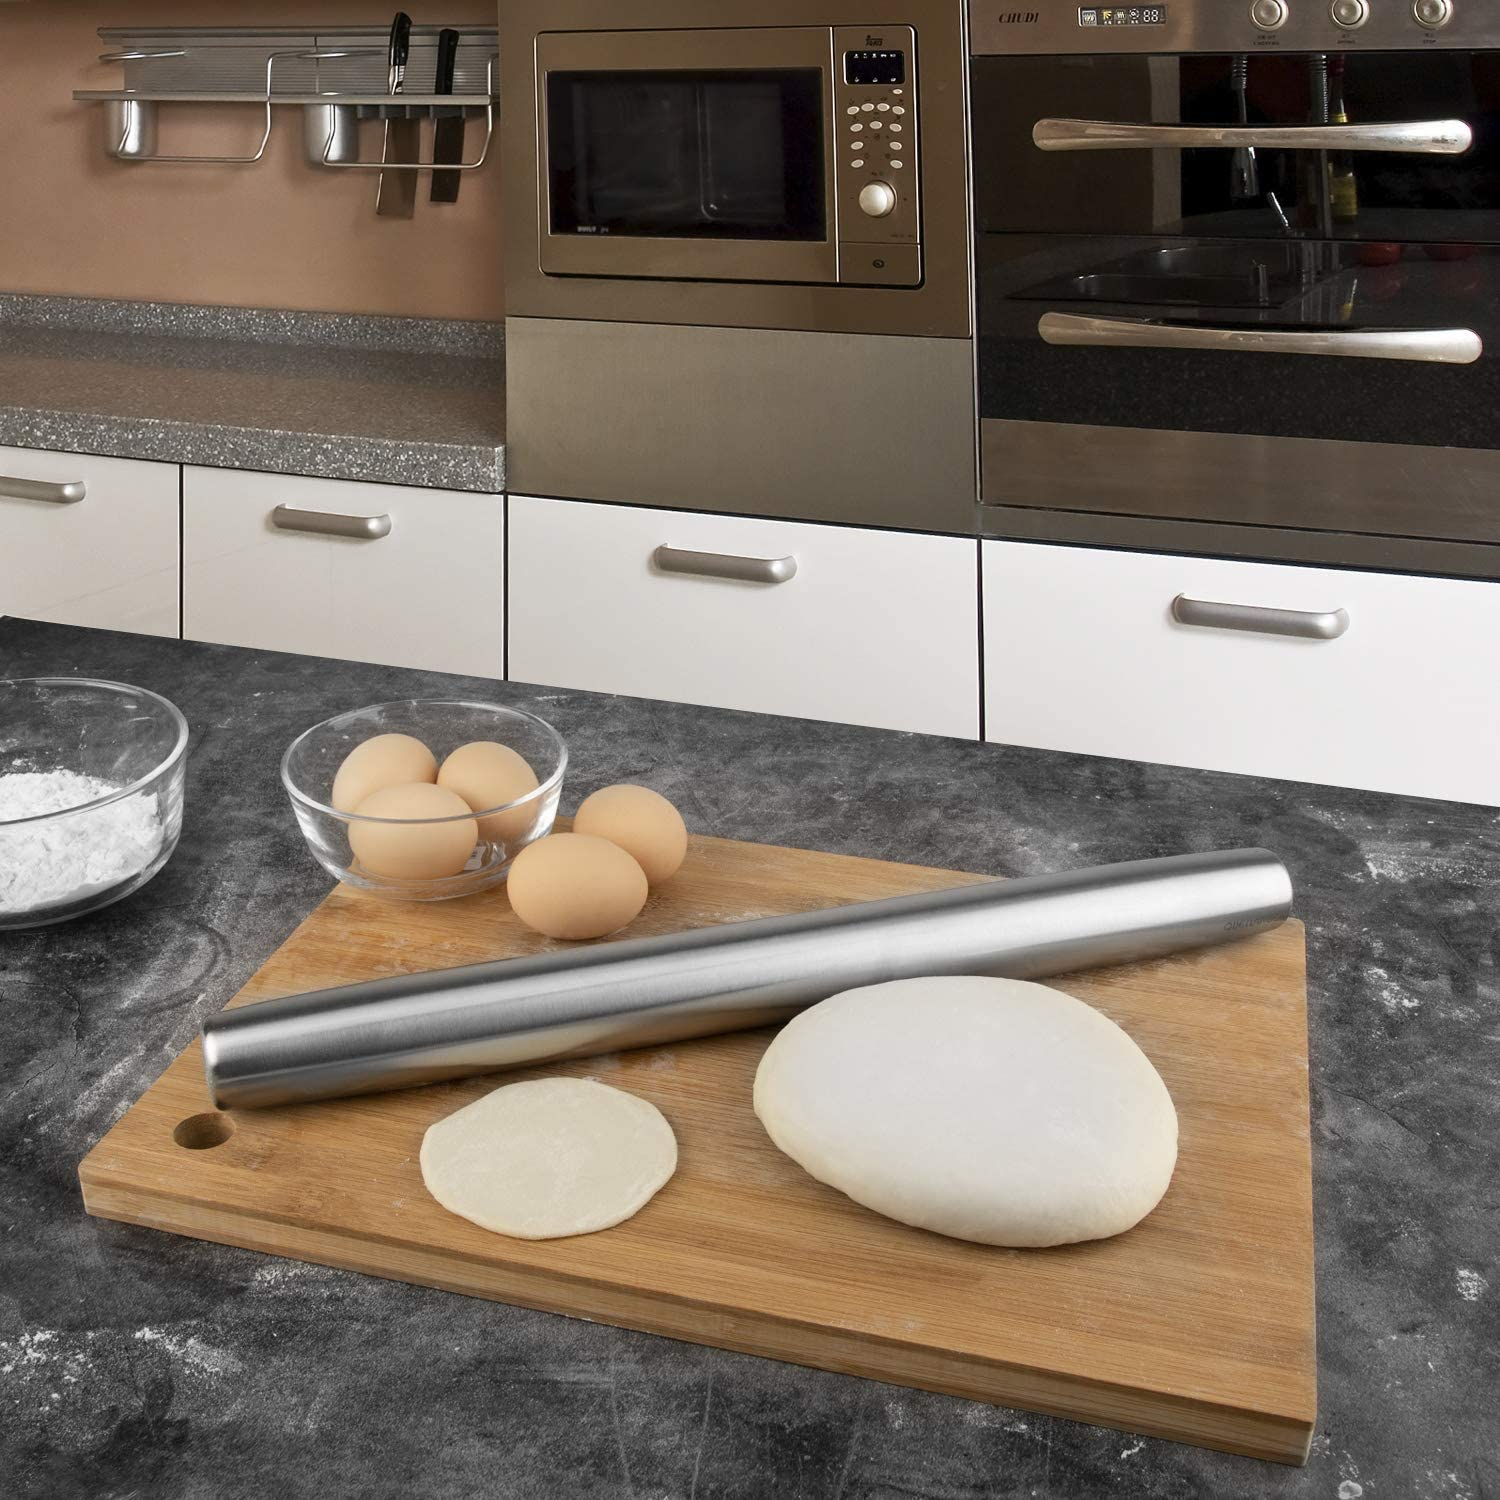 Pasta Cookies Dumpling 16-inch Professional French Rolling Pins for Baking Dough Pizza Pastries Rolling Pin and Silicone Baking Mat Set Stainless Steel Dough Roller Fondant Pie